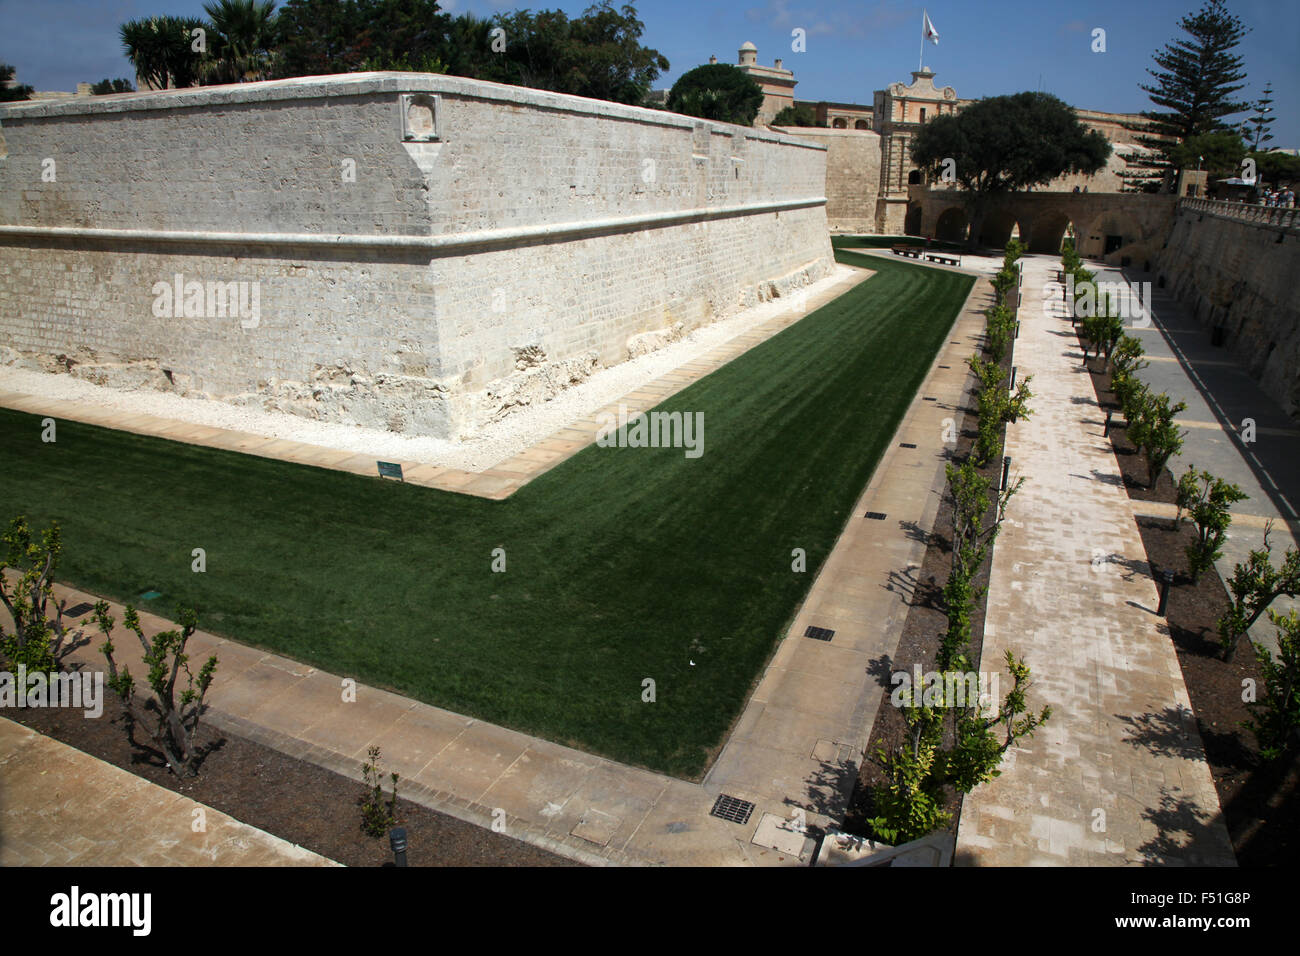 Mdina, since its multi-million Euro face lift, now a very attractive place to visit - Stock Image